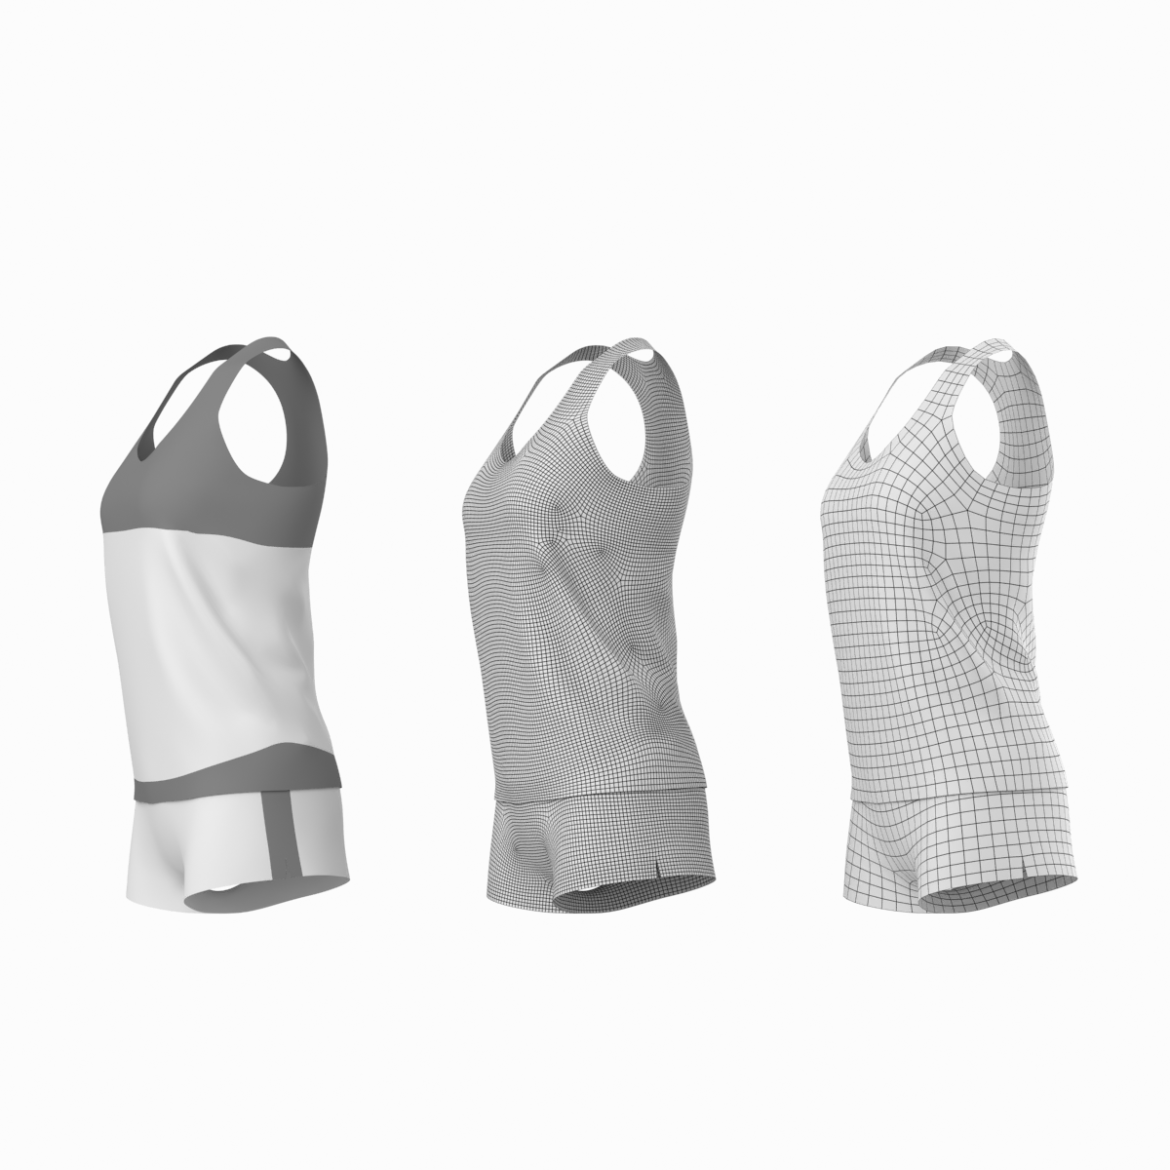 woman sportswear 03 base mesh design kit 3d model 3ds max fbx blend c4d dae ma mb  obj ztl 321877